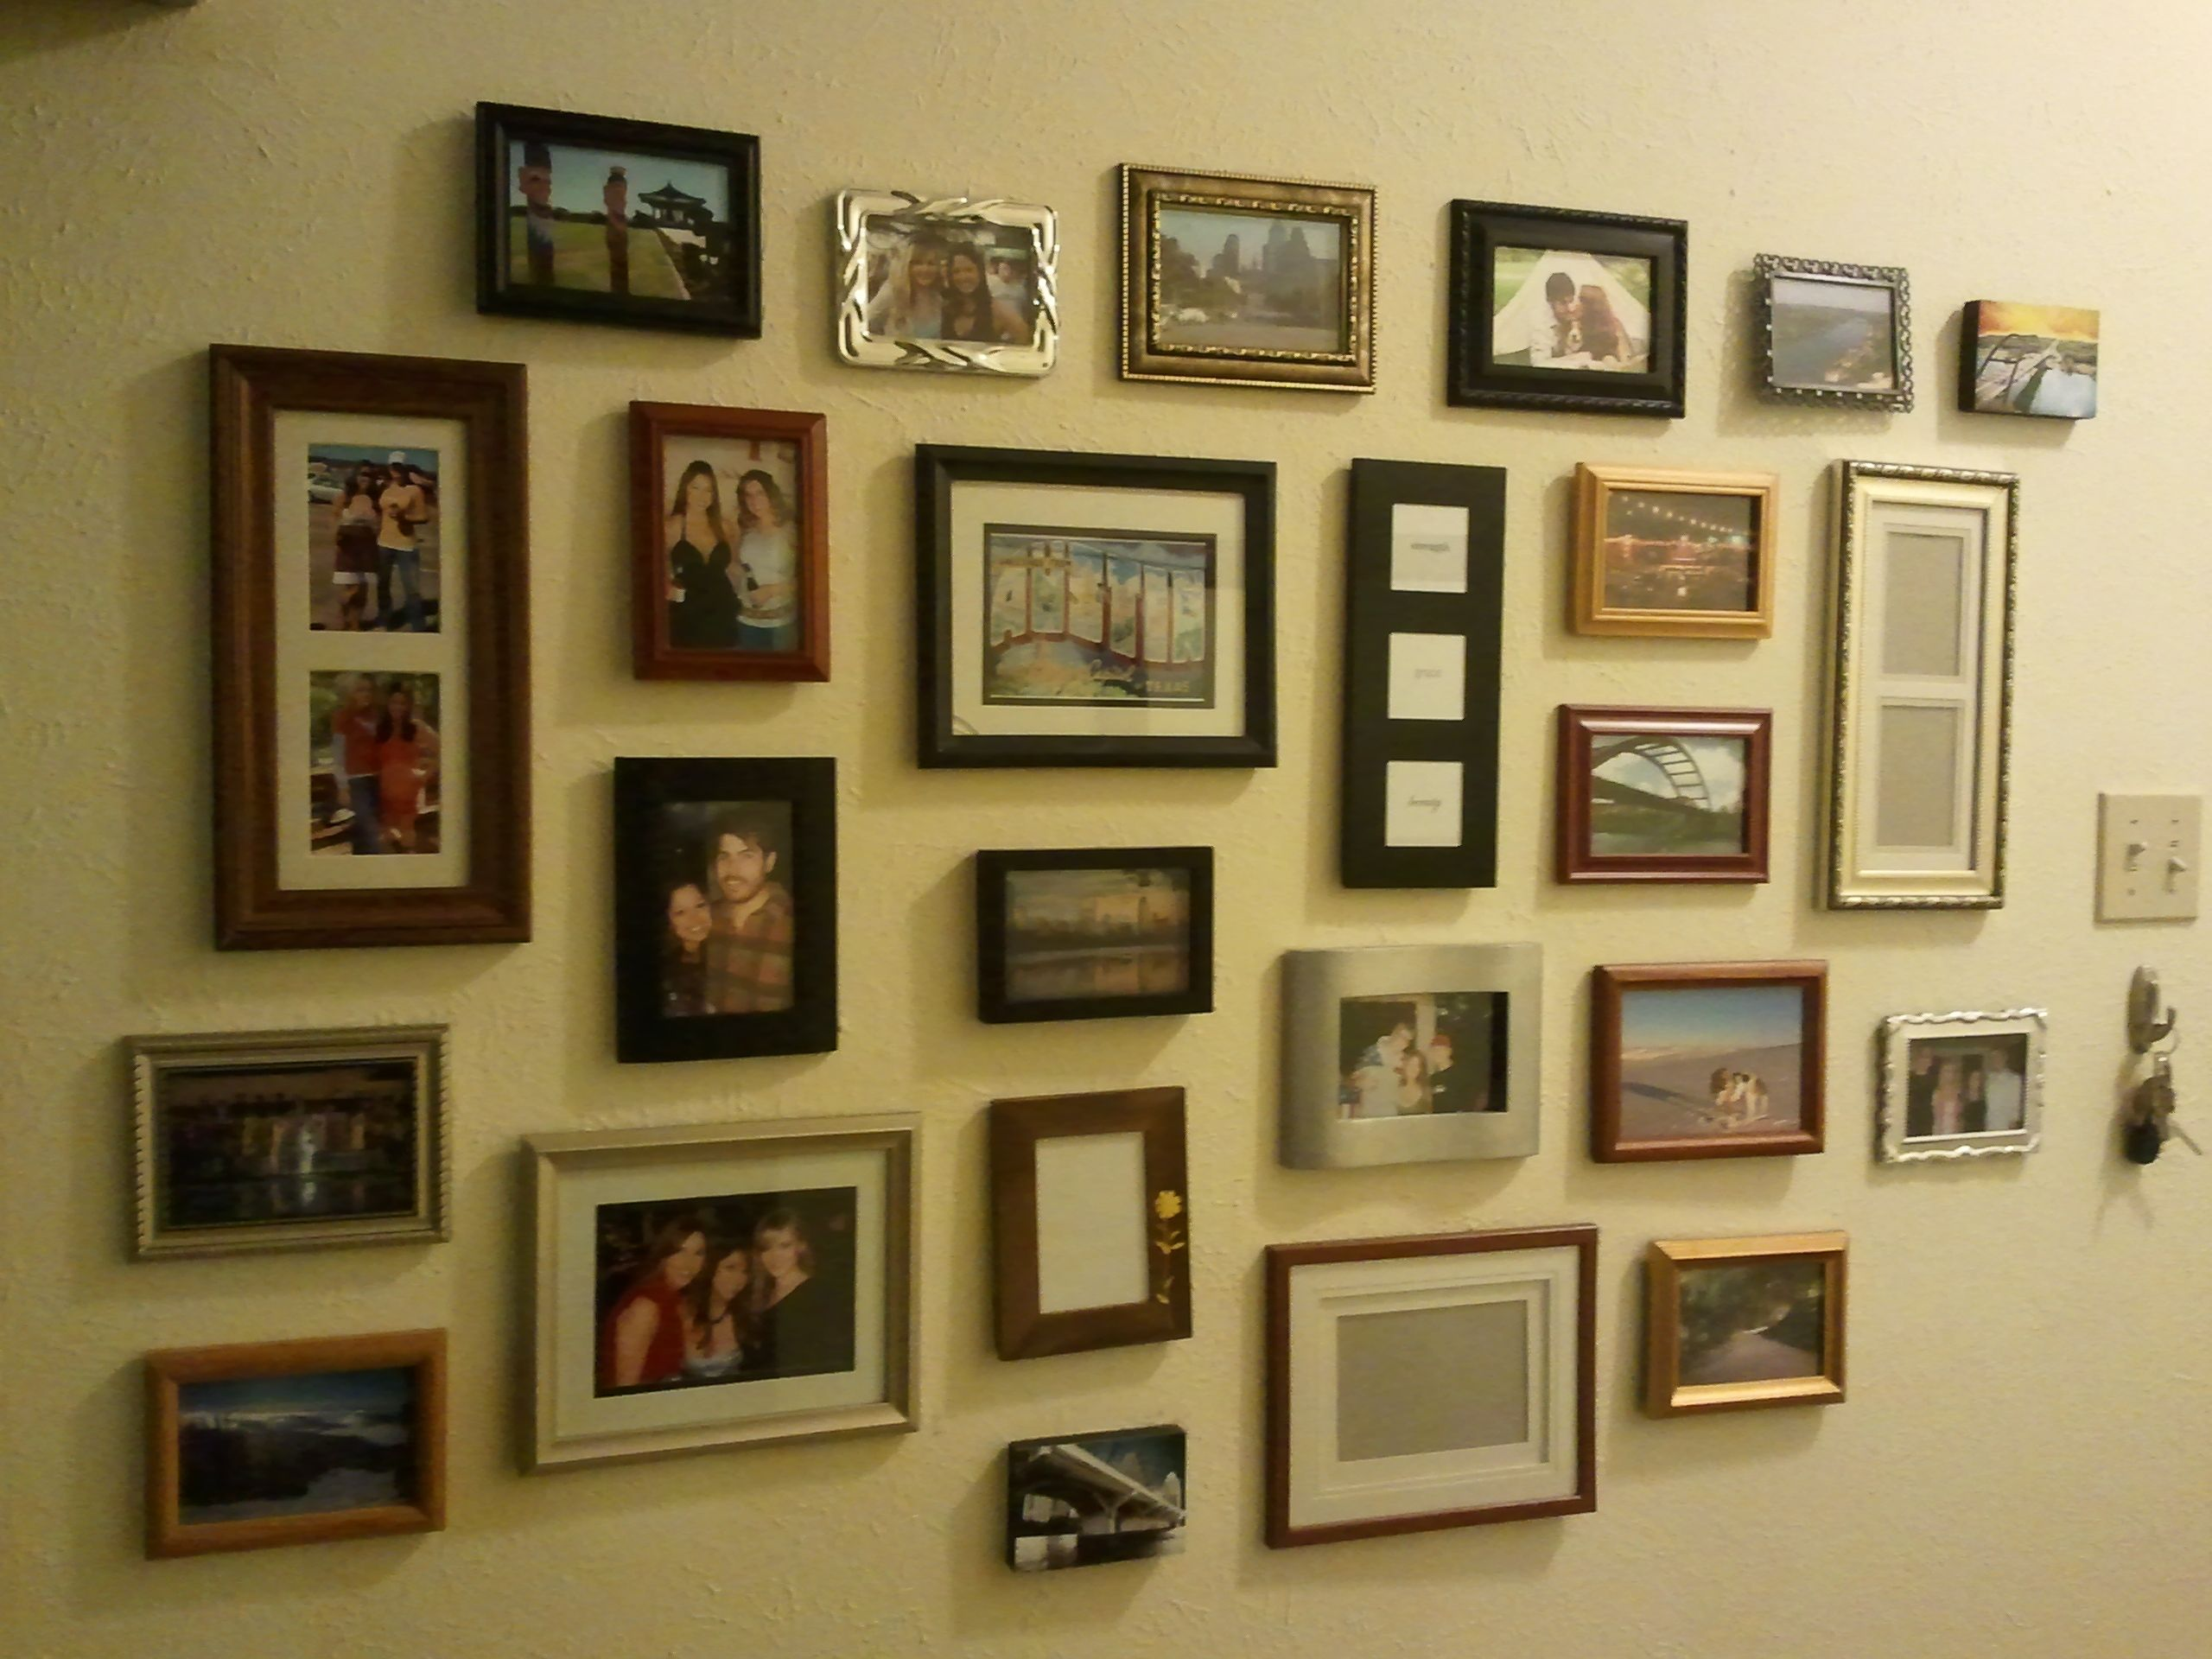 my miscellaneous photo frame wall... I have considered painting all of the frames the same color or shades of the same color, but for now am leaving them just like this